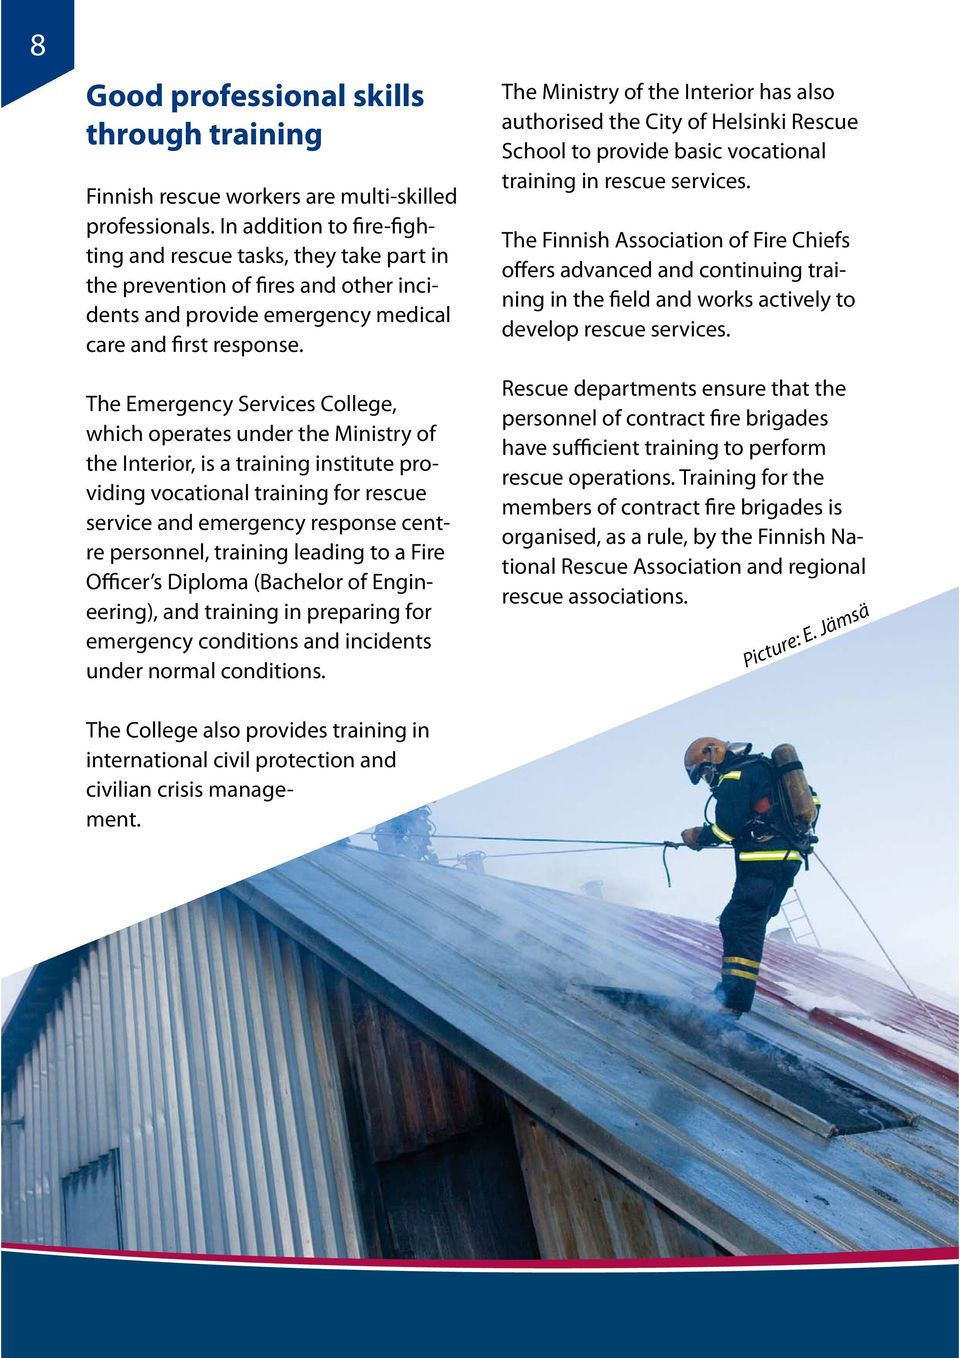 The Emergency Services College, which operates under the Ministry of the Interior, is a training institute providing vocational training for rescue service and emergency response centre personnel,